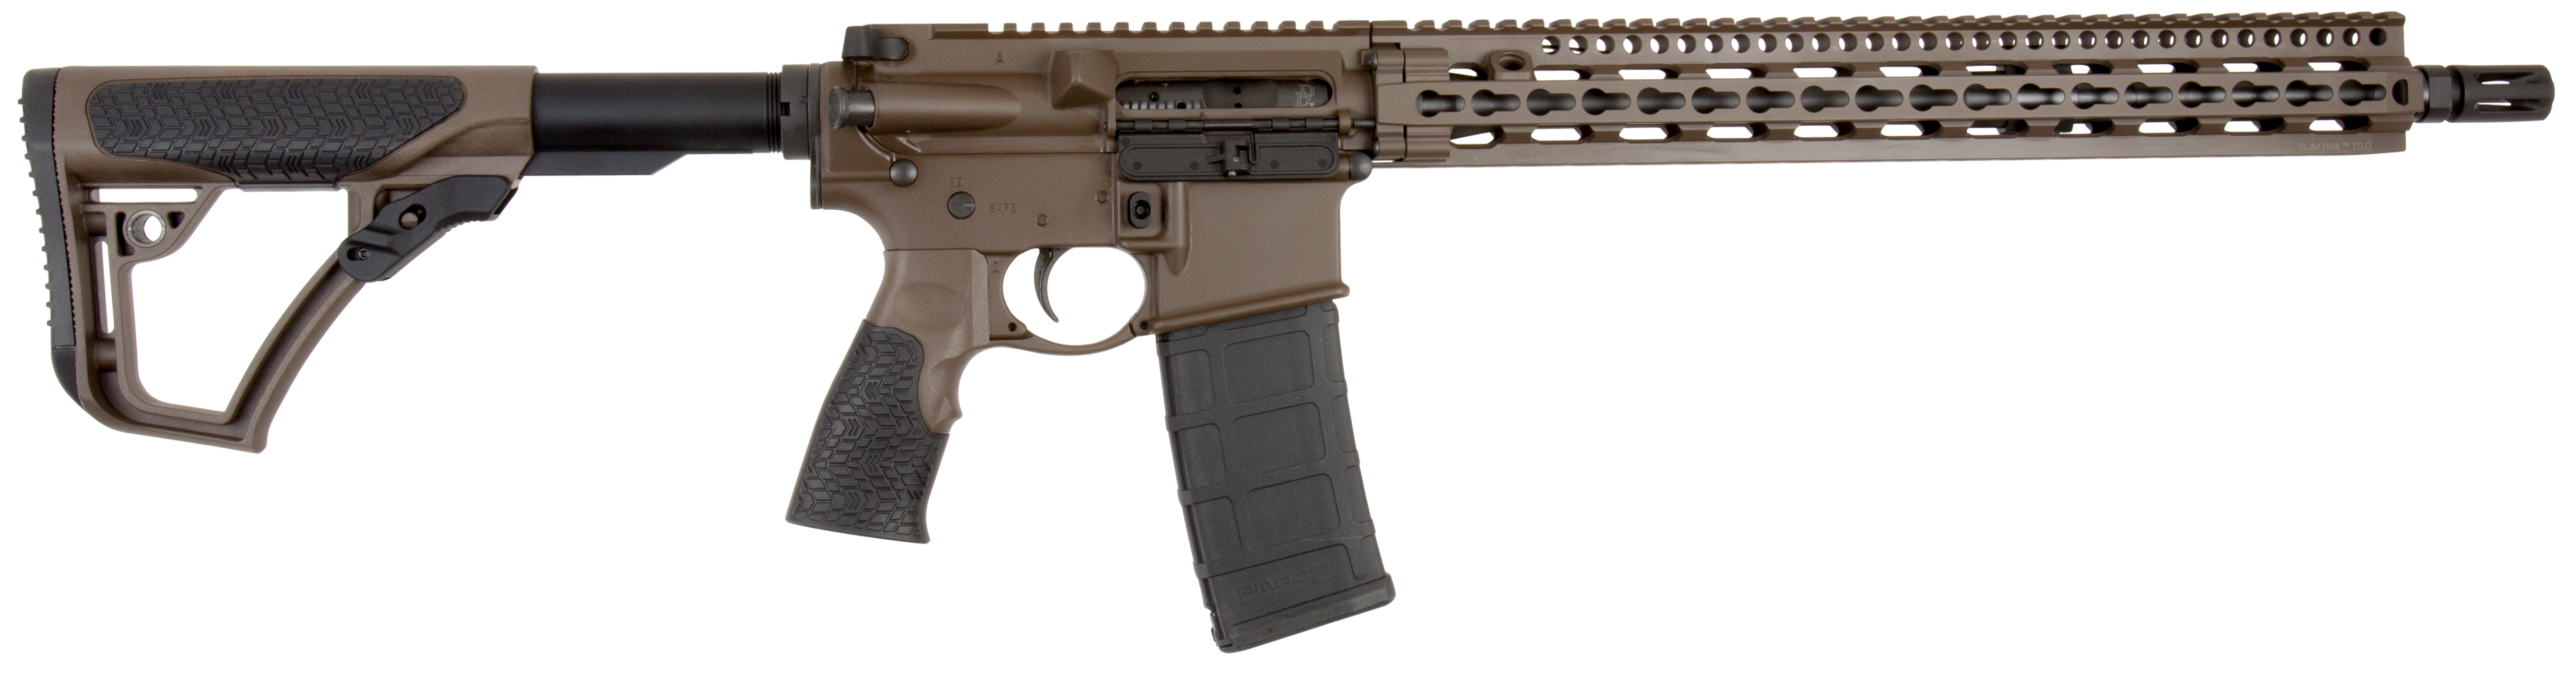 Daniel Defense 00257055 DDM4 V11 *CA Compliant* Semi-Automatic 223 Remington/5.56 NATO 16